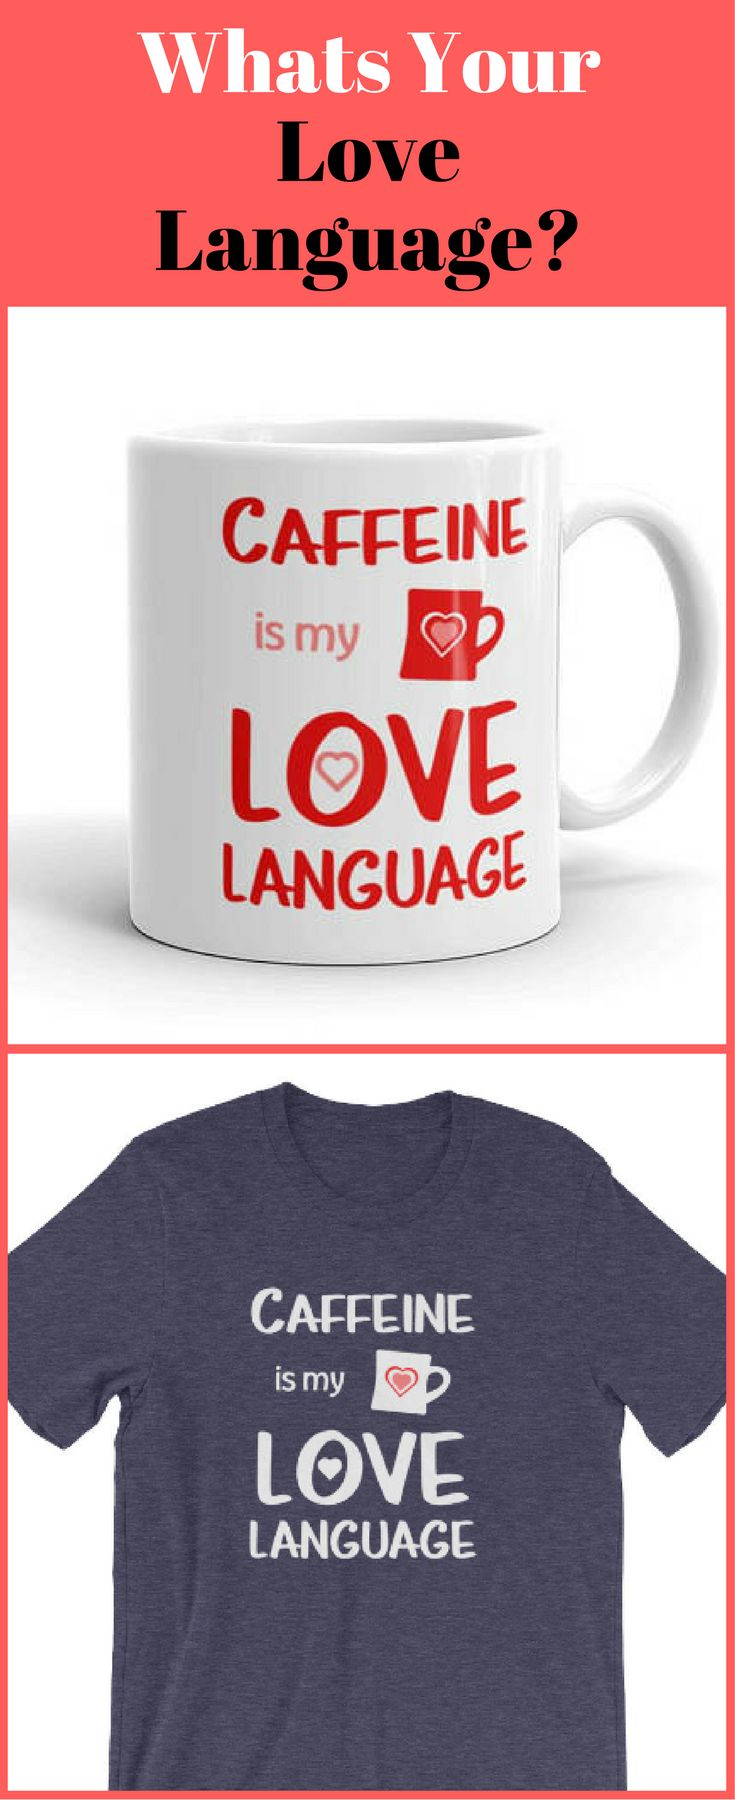 Whats your Love Language?  What a cute mug & shirt idea, I swear like a sailor and love coffee, no apologies!  #mugs #lovelanguage #test #qualitytime #actsofservice #physicaltouch #wordsofaffirmation #gifts  | https://www.etsy.com/shop/HippieHooplaGifts